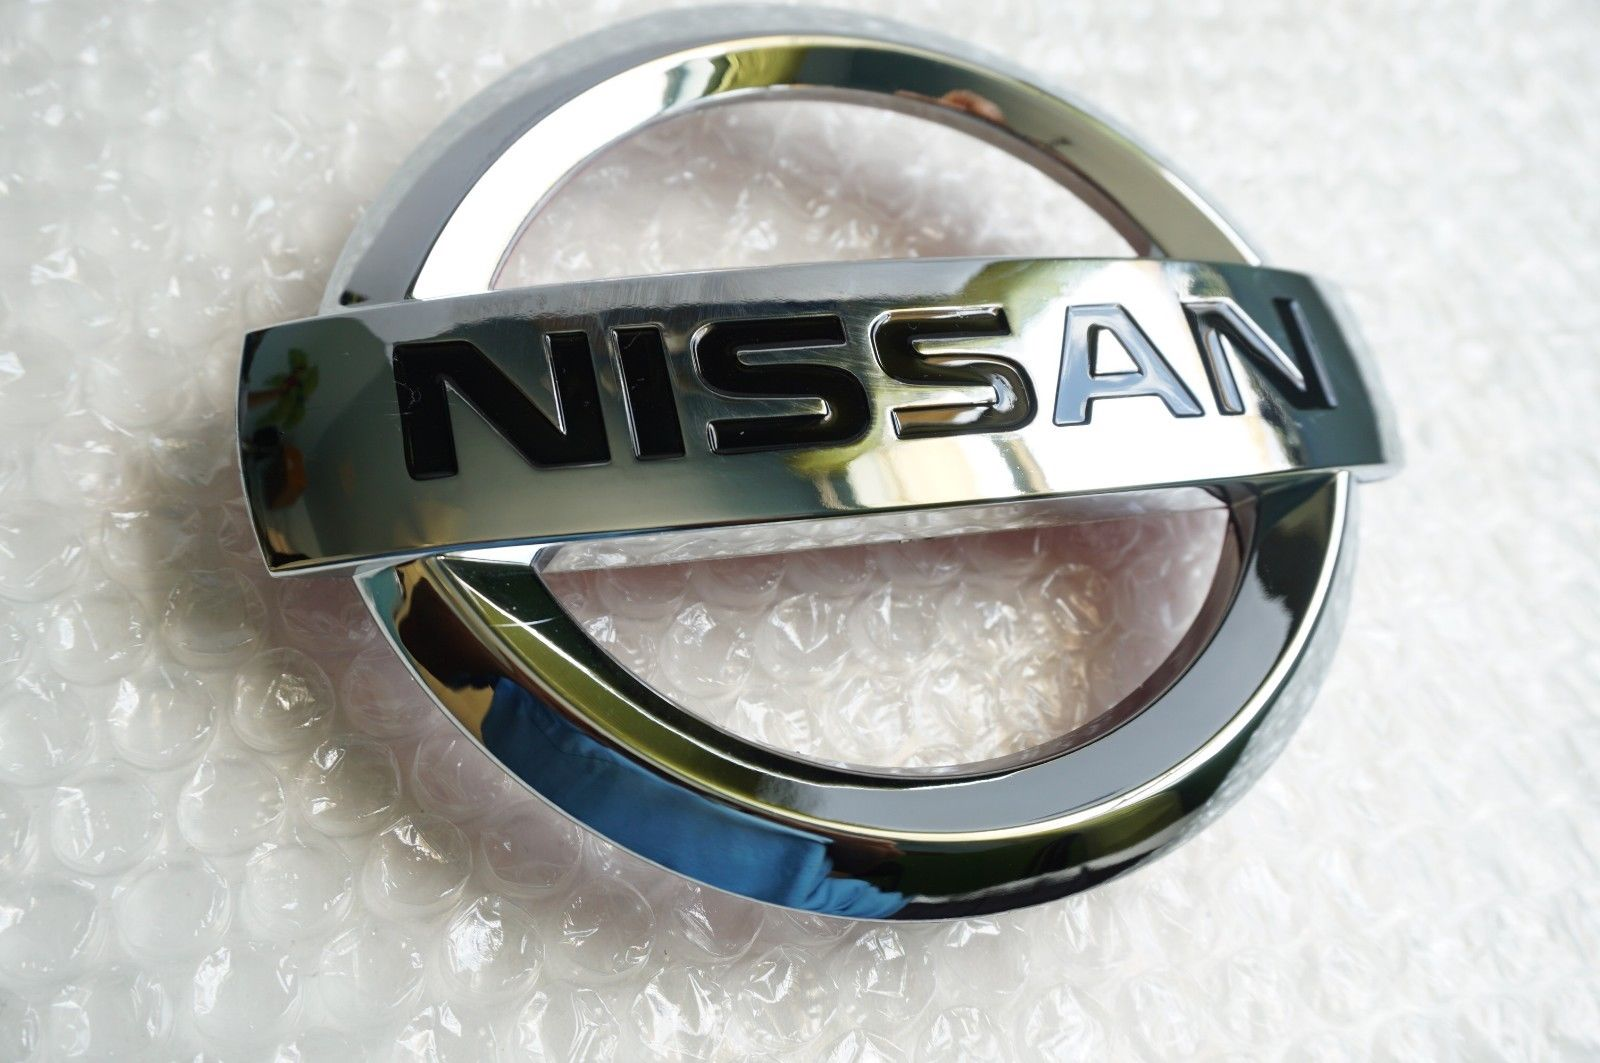 Amazing New 2007 2017 Nissan Altima Front Grille Emblem Hood Grill Chrome 62890 Ja000 2018